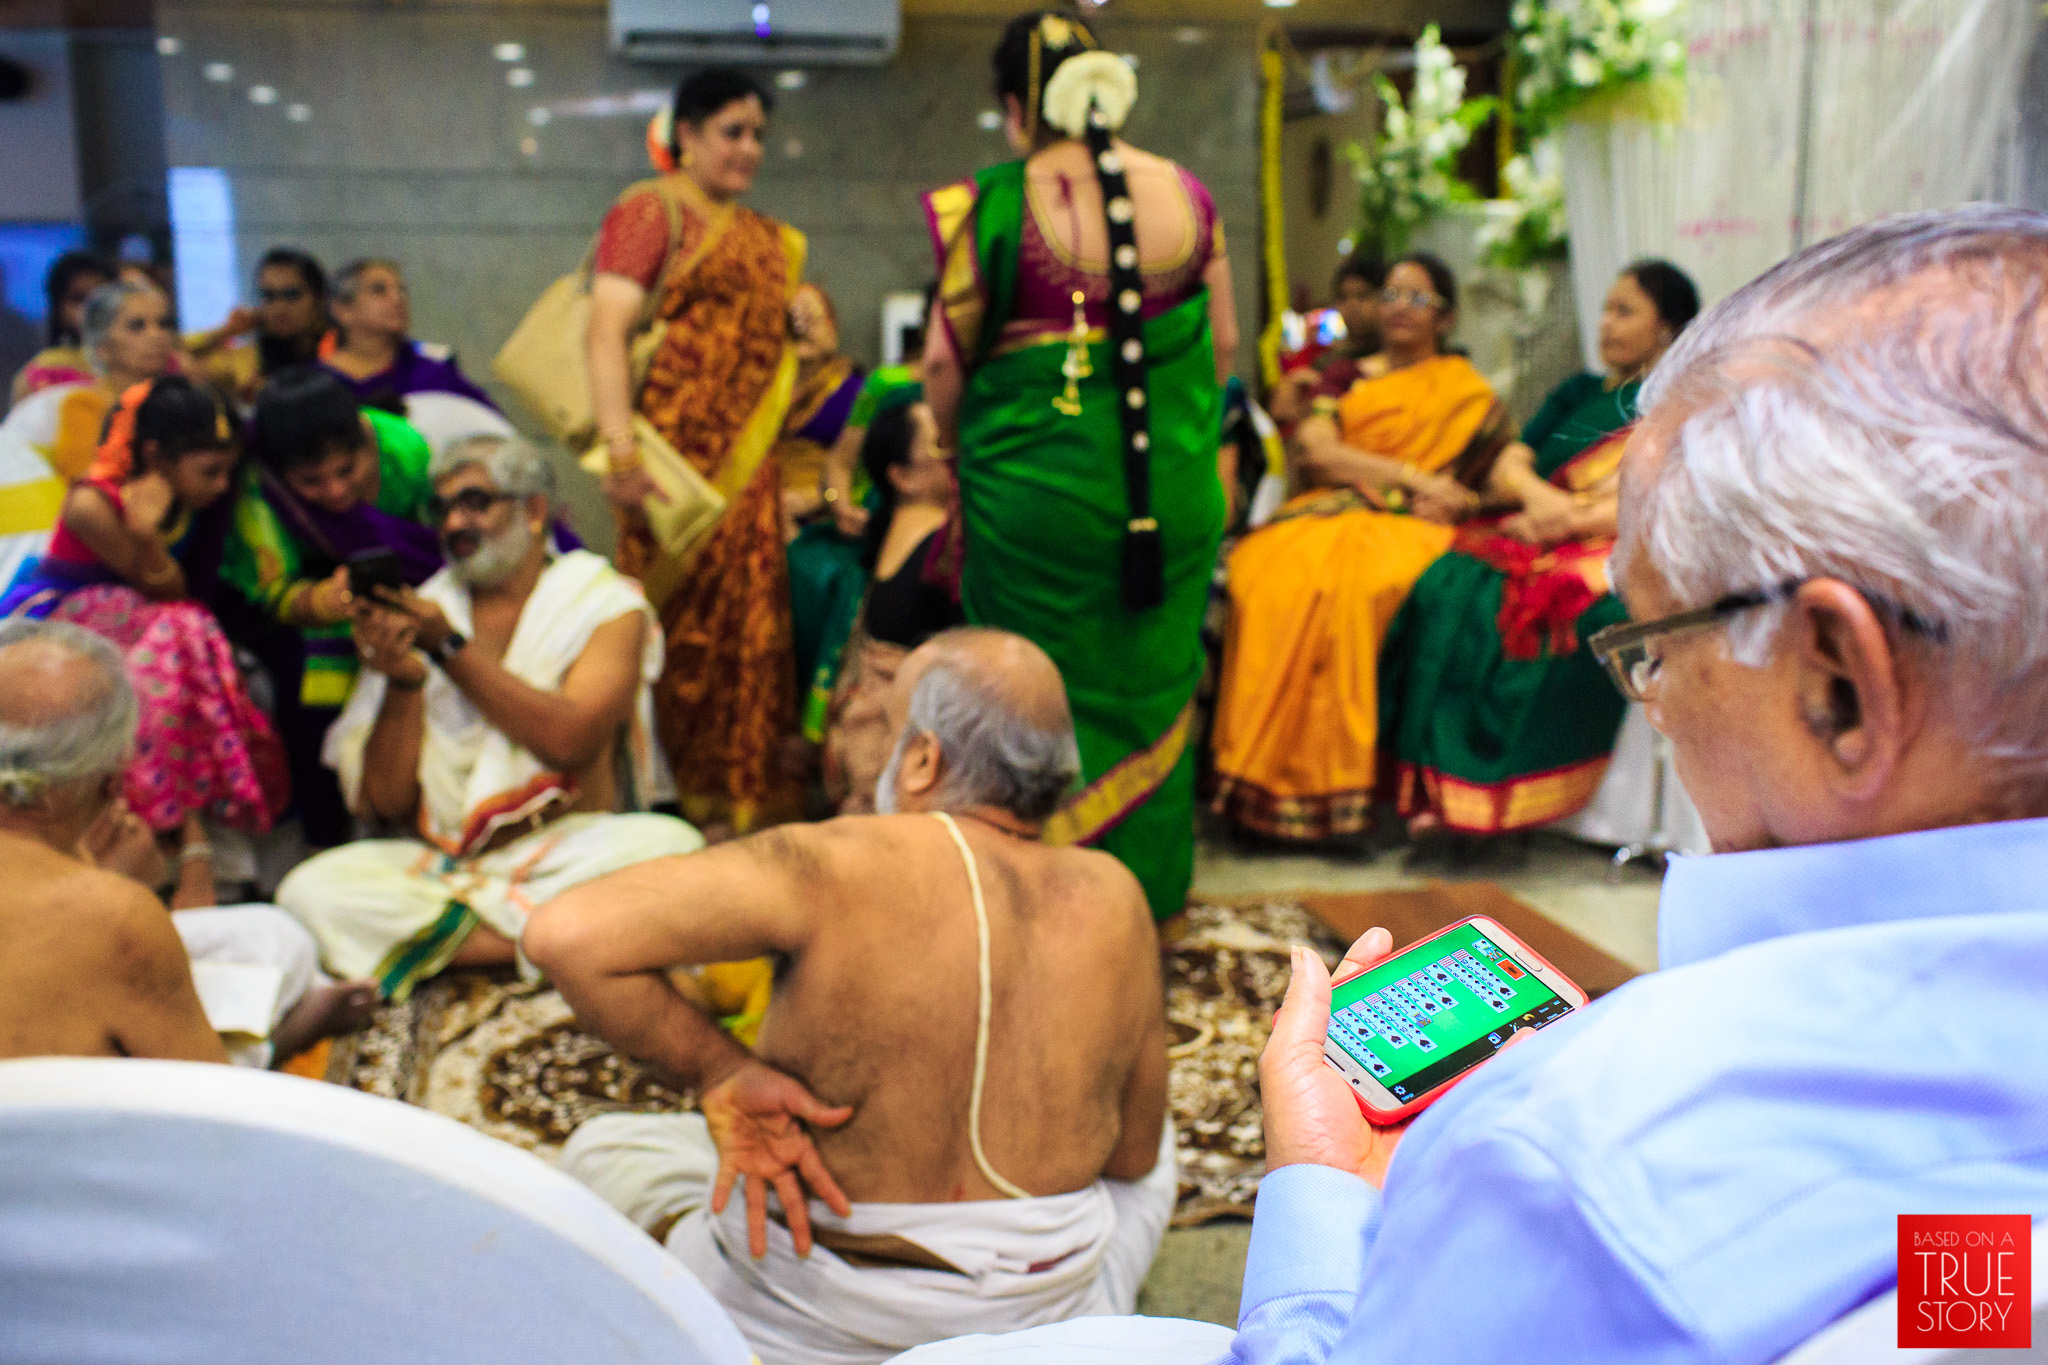 Tambrahm-Candid-Wedding-Photographers-Bangalore-0107.jpg